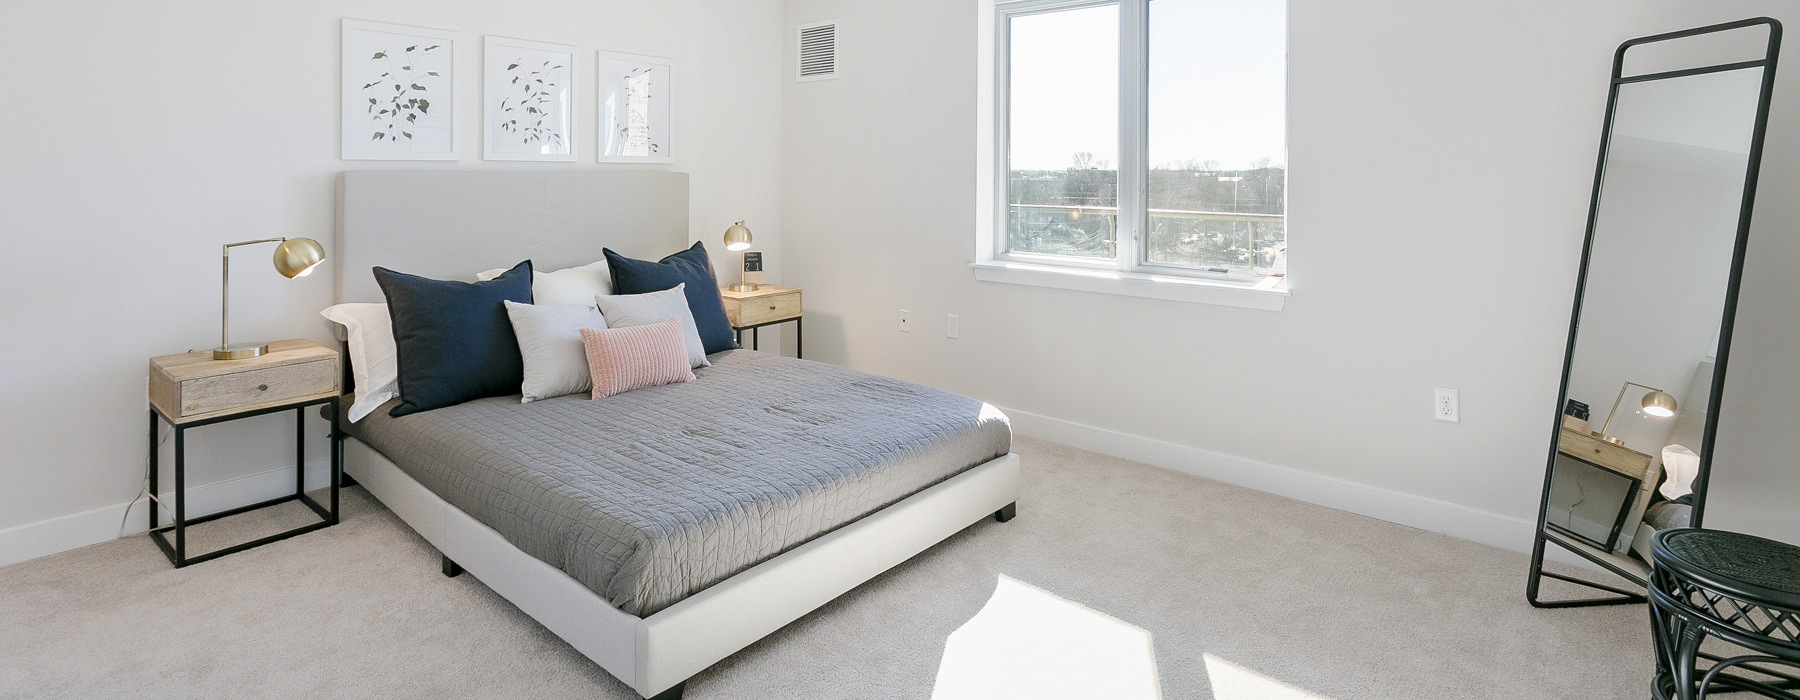 natural lighting fills large bedroom